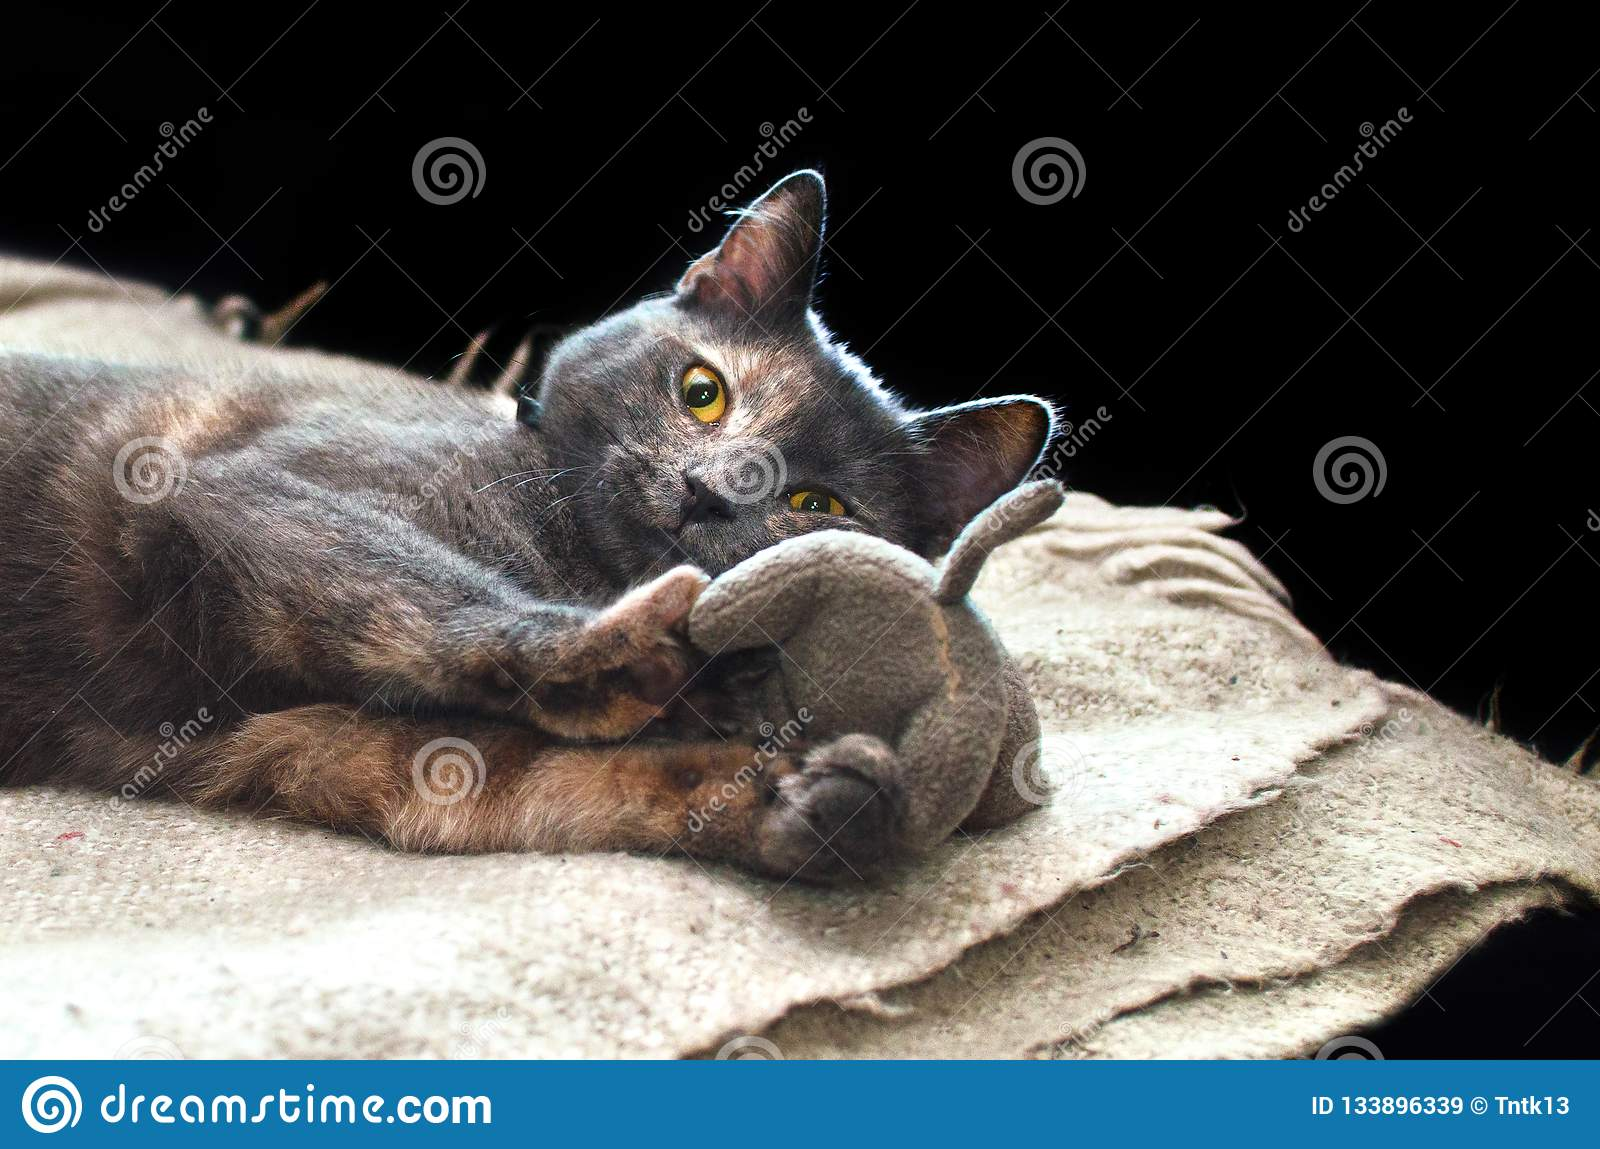 Grey cat lies on a wool scarf and plays with gray plush kitten.